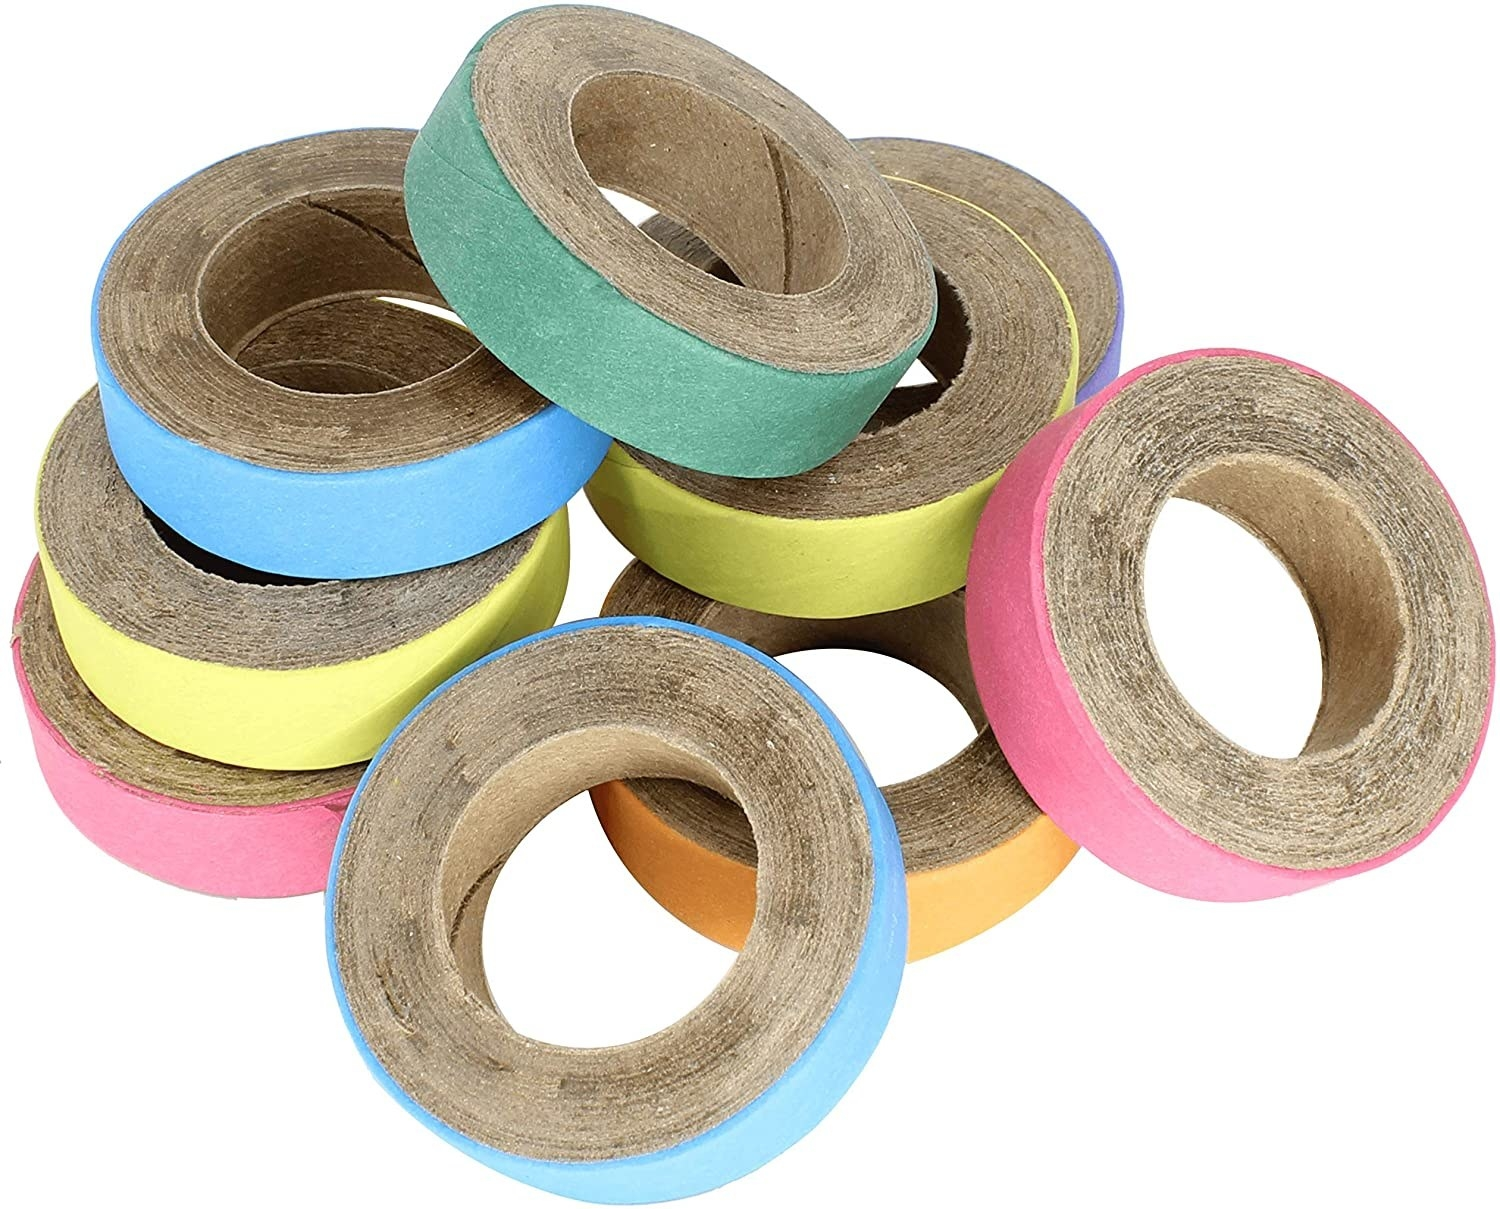 The bagel-shaped wooden toys